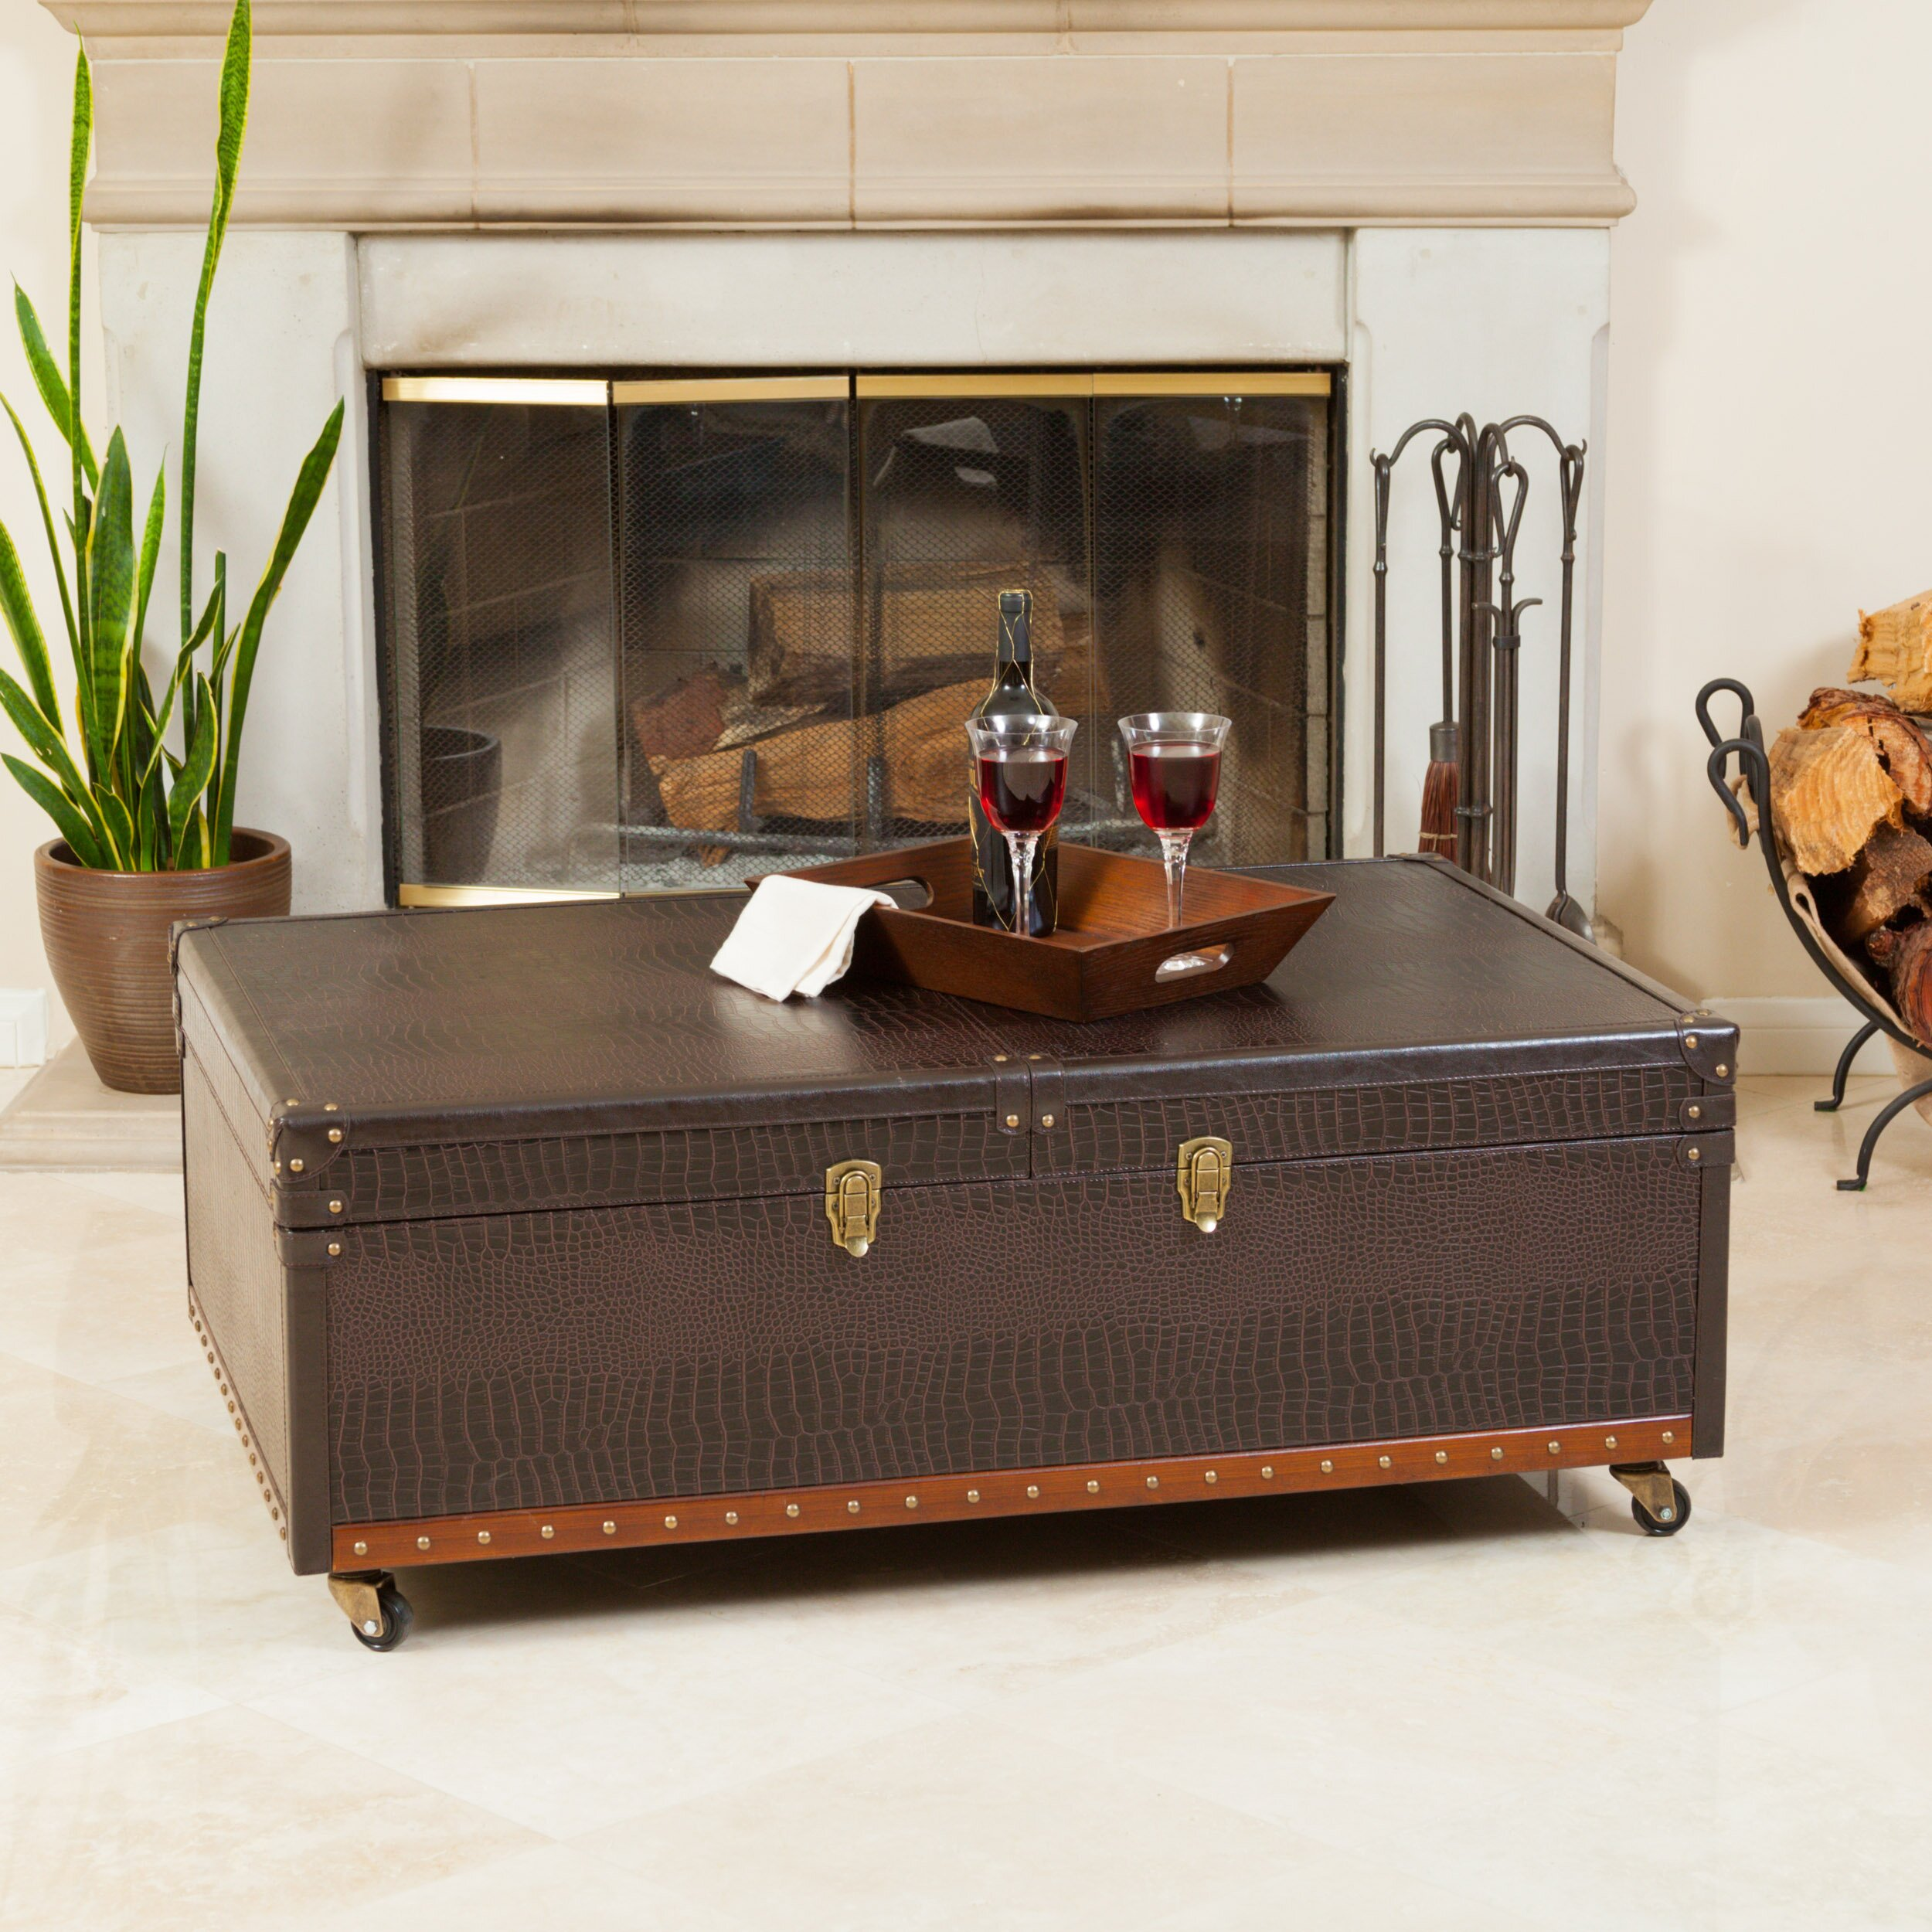 Bowler Trunk And Coffee Table Wayfair